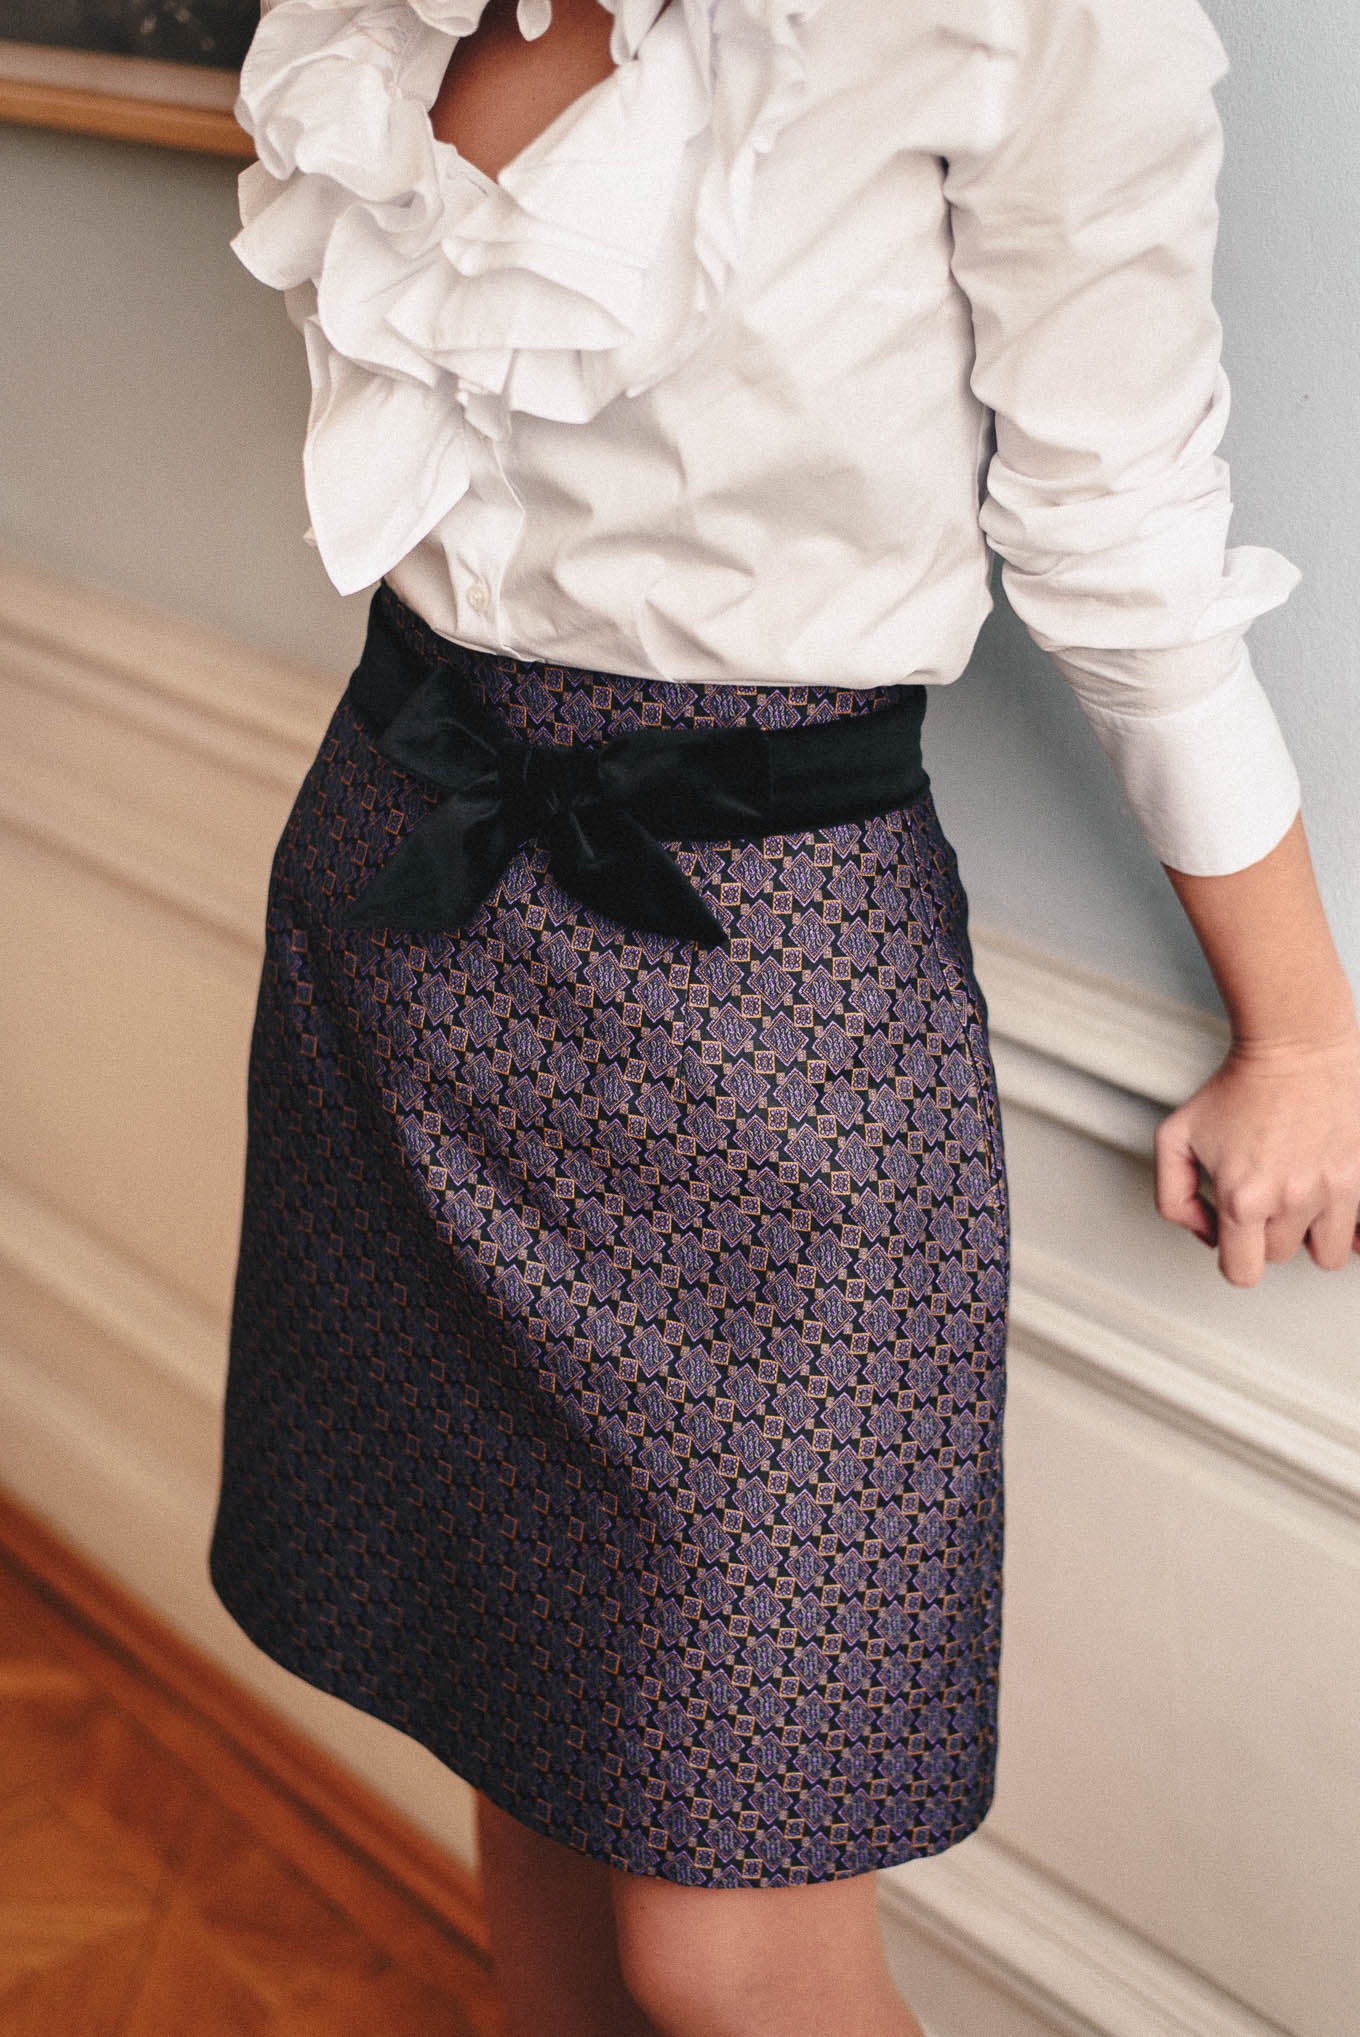 jacquard skirt from Denina Martin Collection